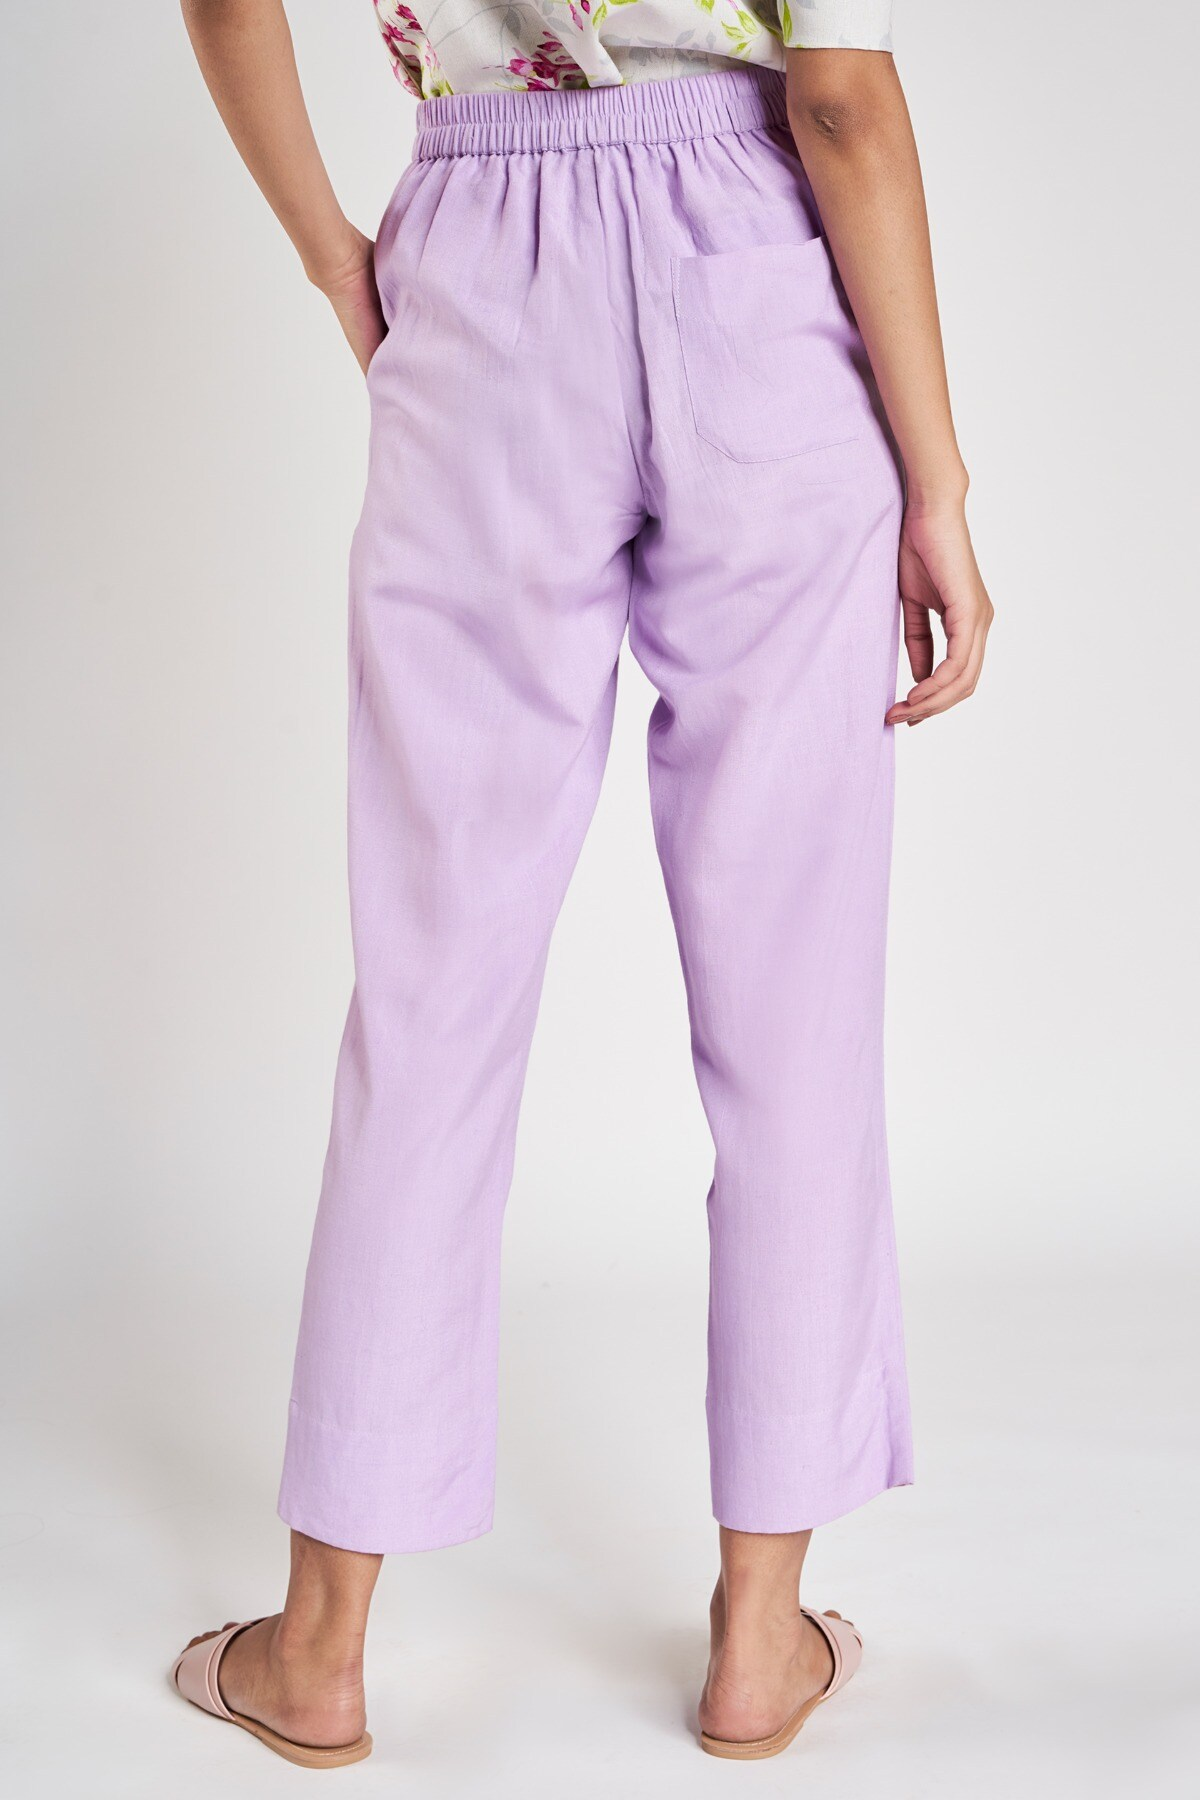 AND   Lilac Solid Bottom